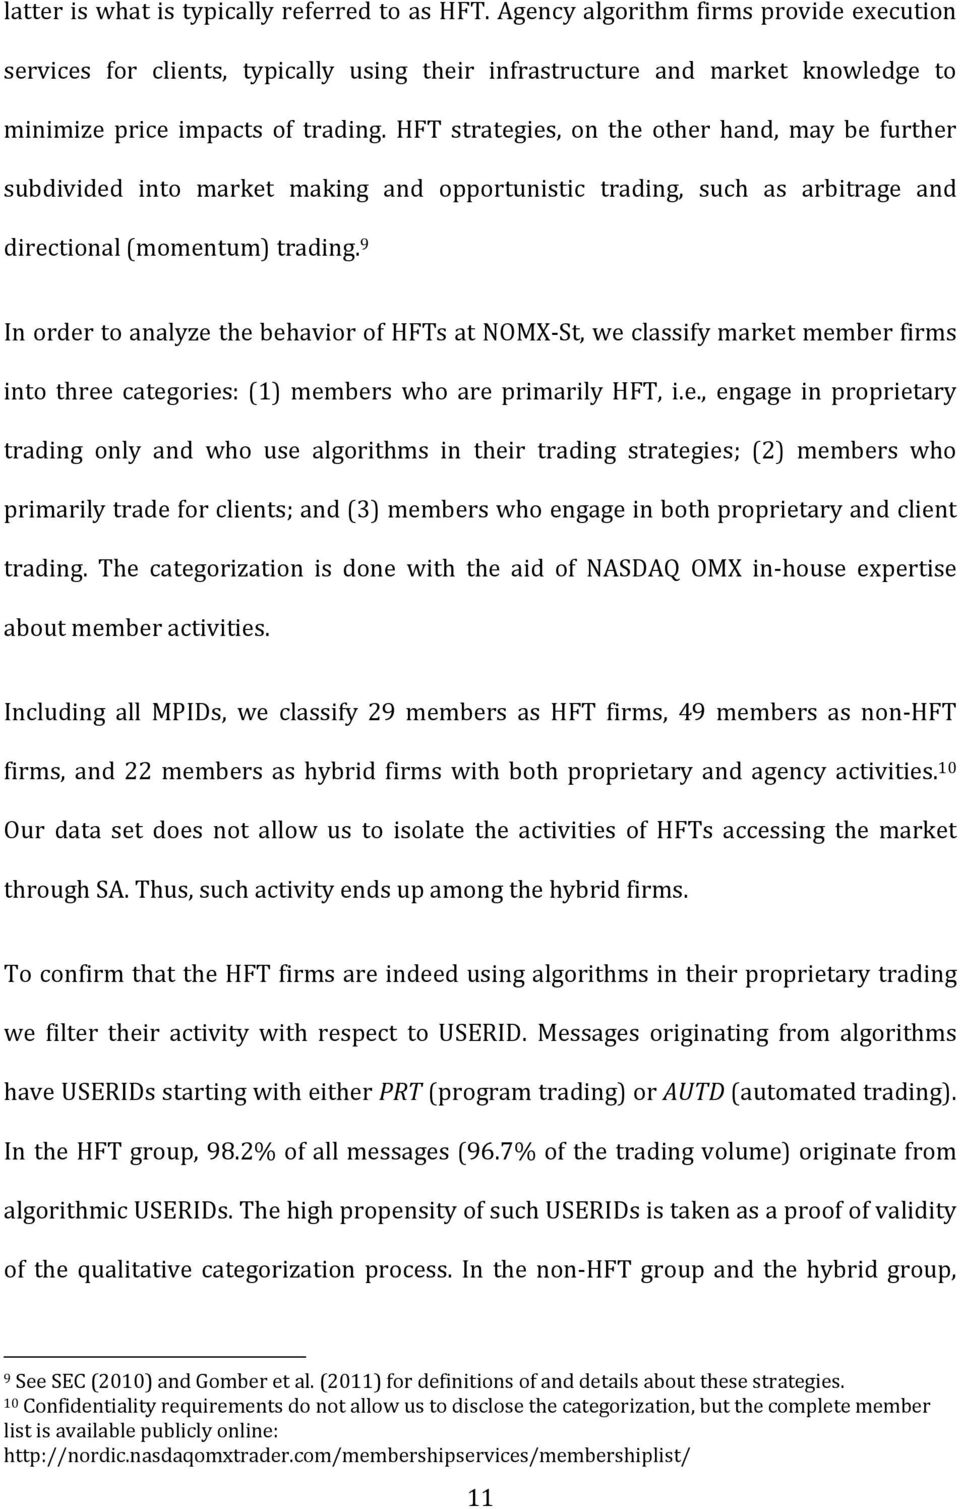 HFT strategies, on the other hand, may be further subdivided into market making and opportunistic trading, such as arbitrage and directional (momentum) trading.